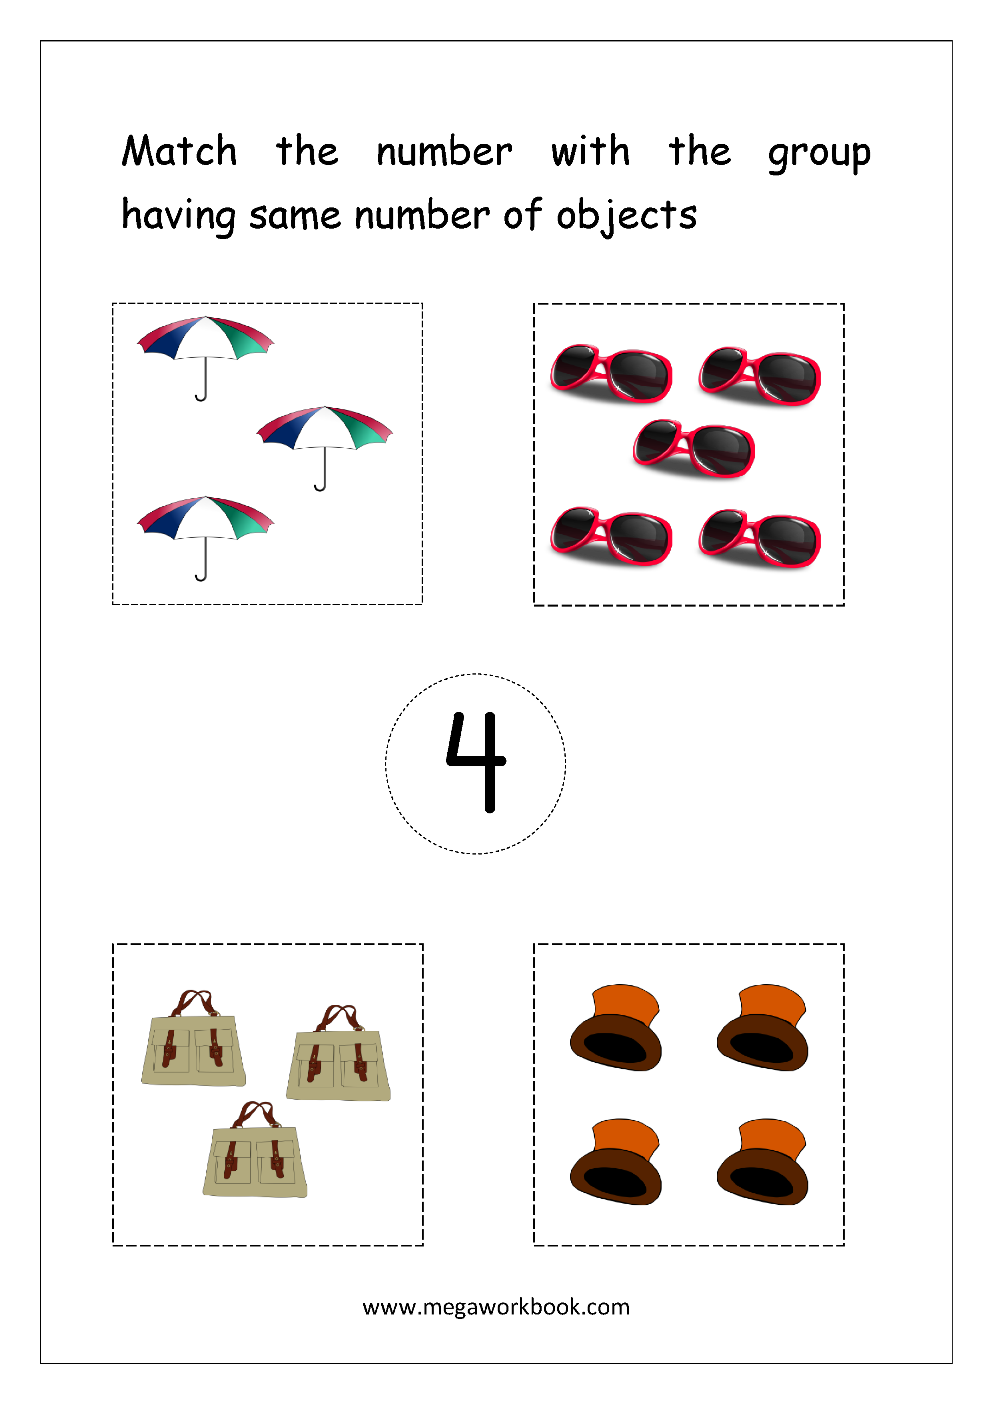 Free Printable Number Matching Worksheets For Kindergarten And ...